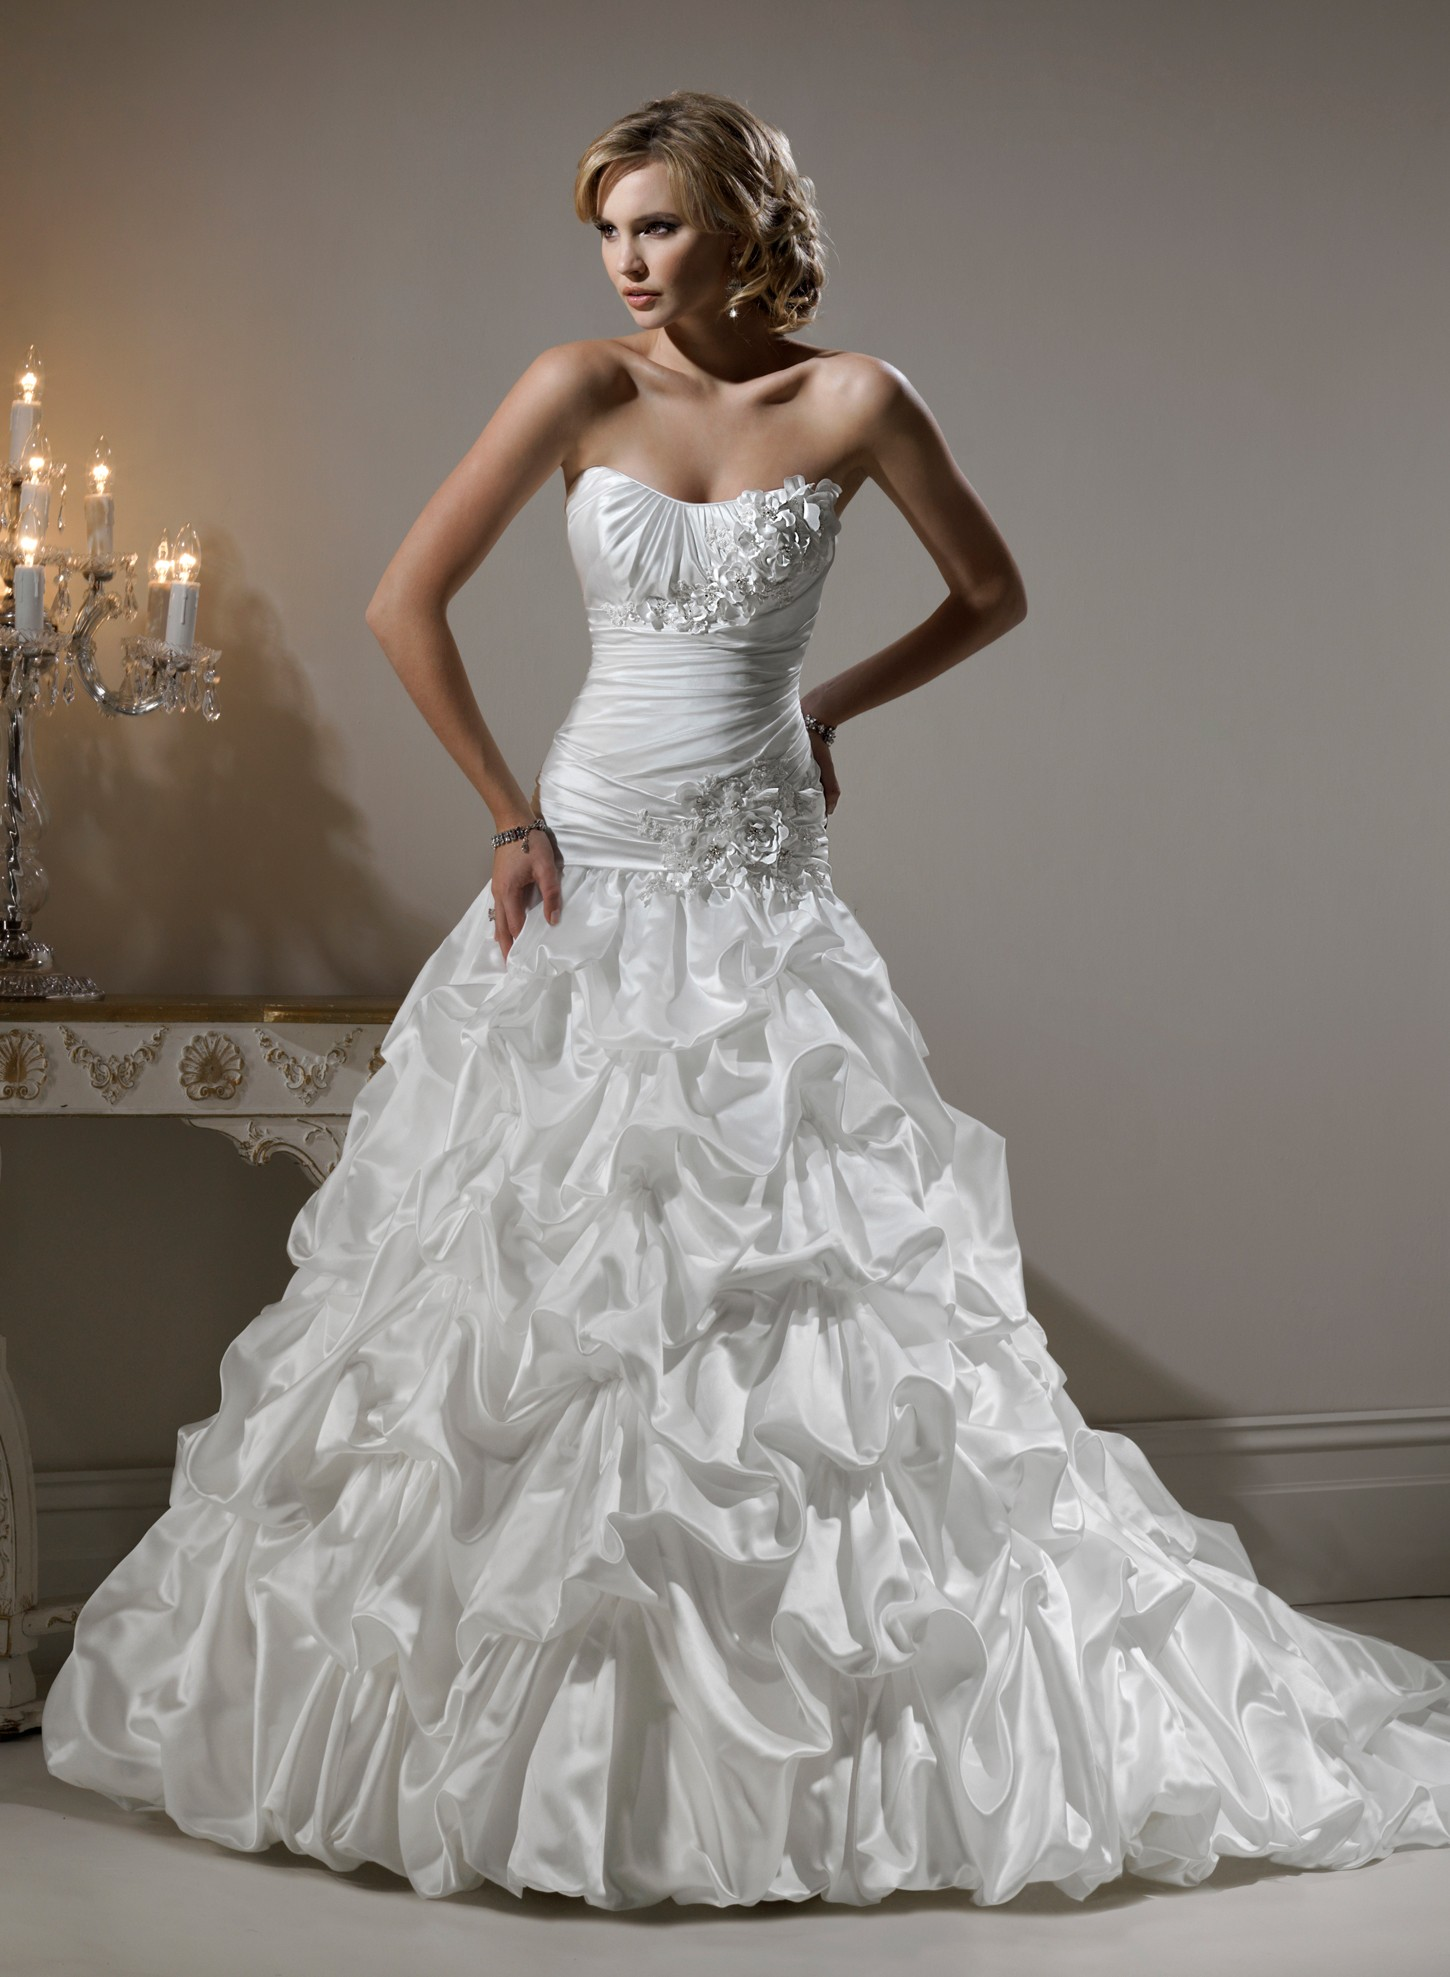 How To Choose The Wedding Dress Thats Right For You